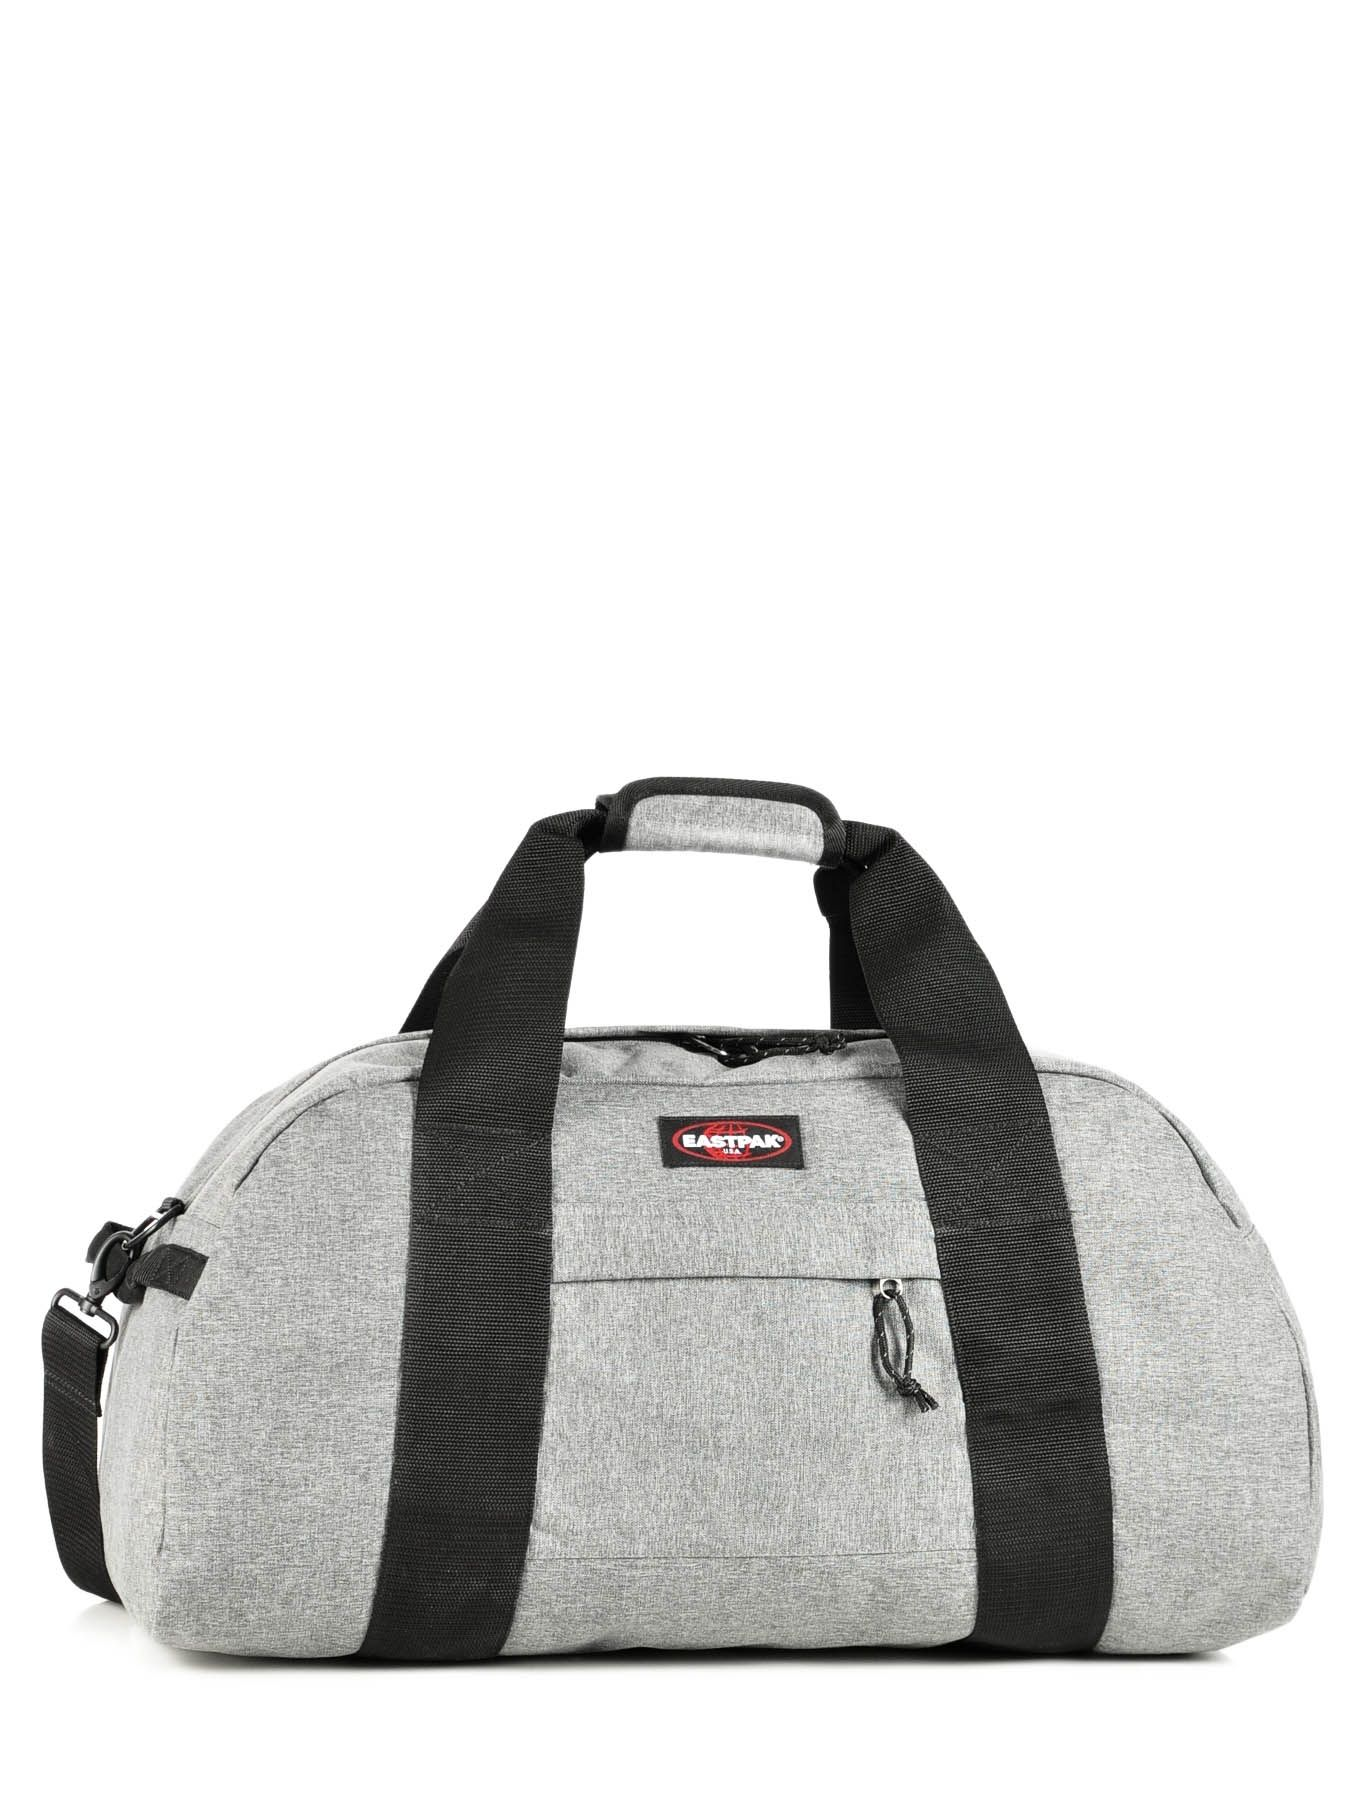 Luggage be Voyage Et Authentic Edisac Eastpak Sac Sur Sport Station m0vN8Onw